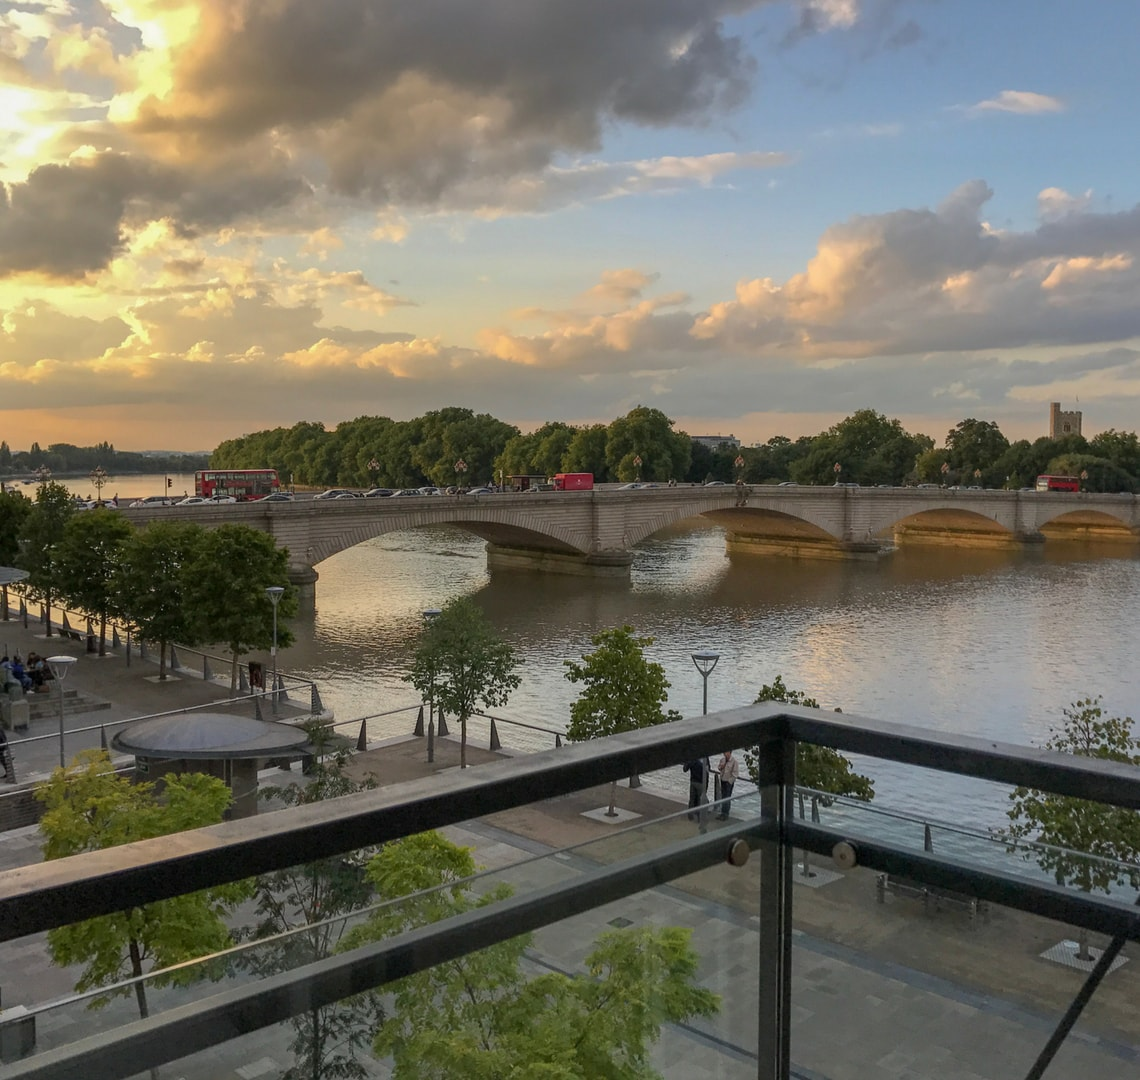 An Absolutely Incredible Year of Holidays! - View of Putney Bridge